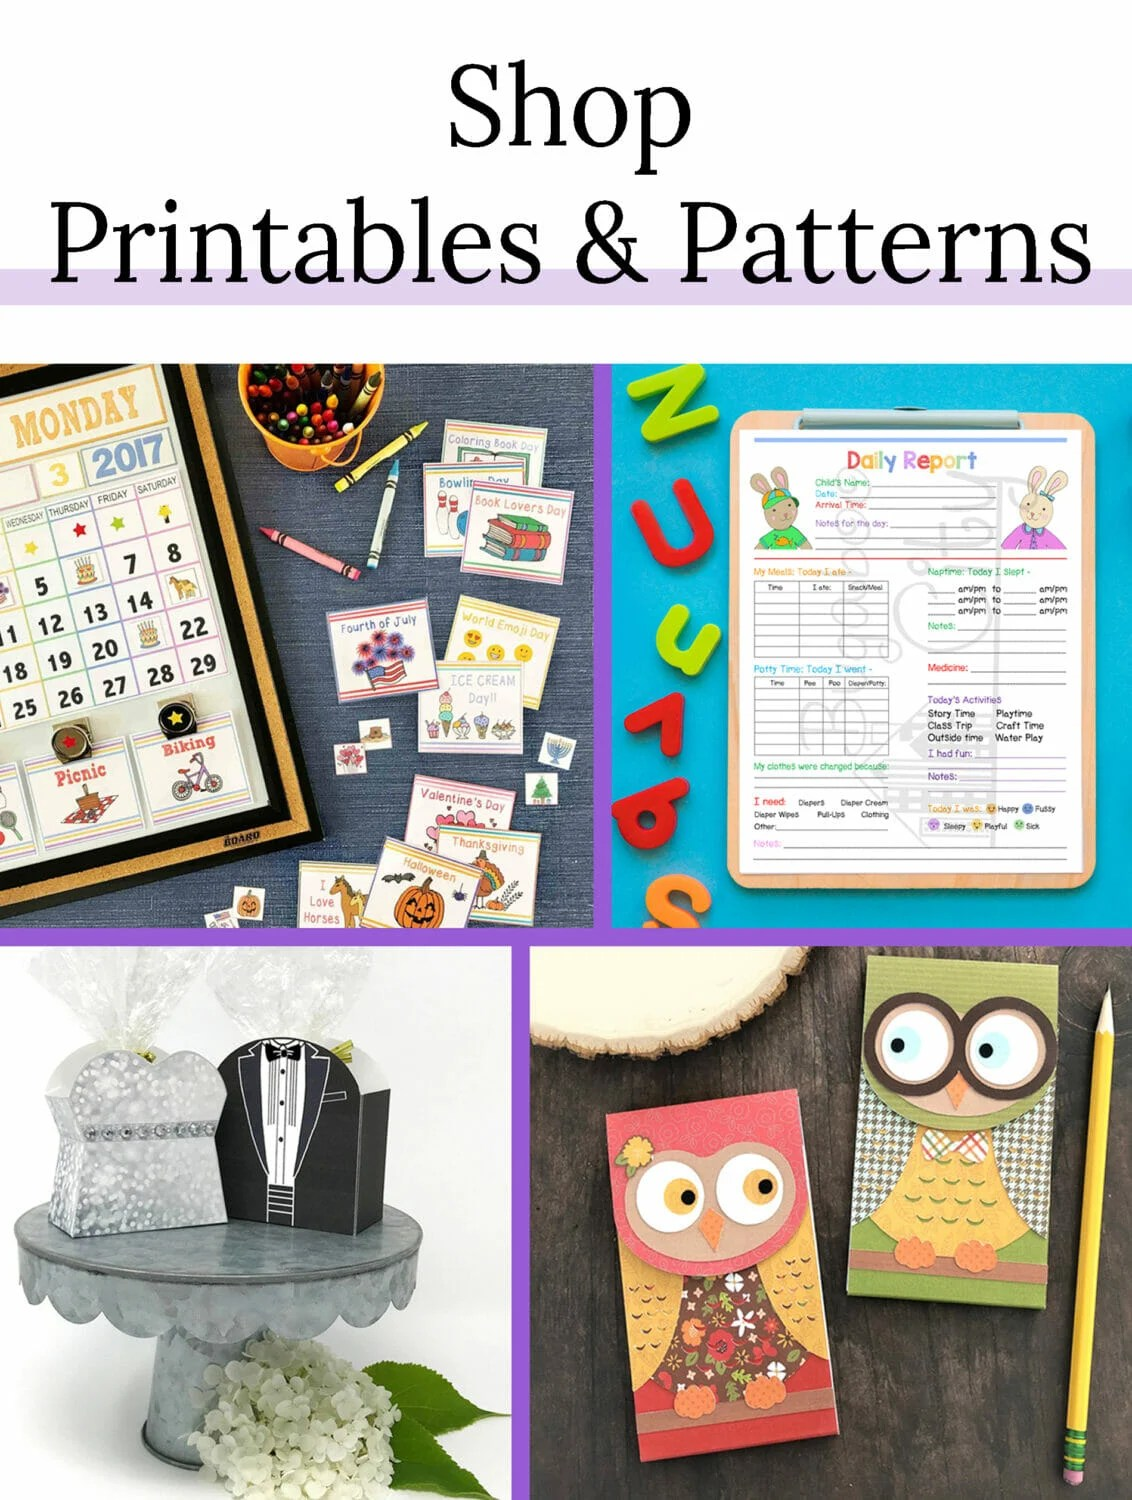 Shop Printables and Patterns from the Crafting Cheerfully Etsy Shop